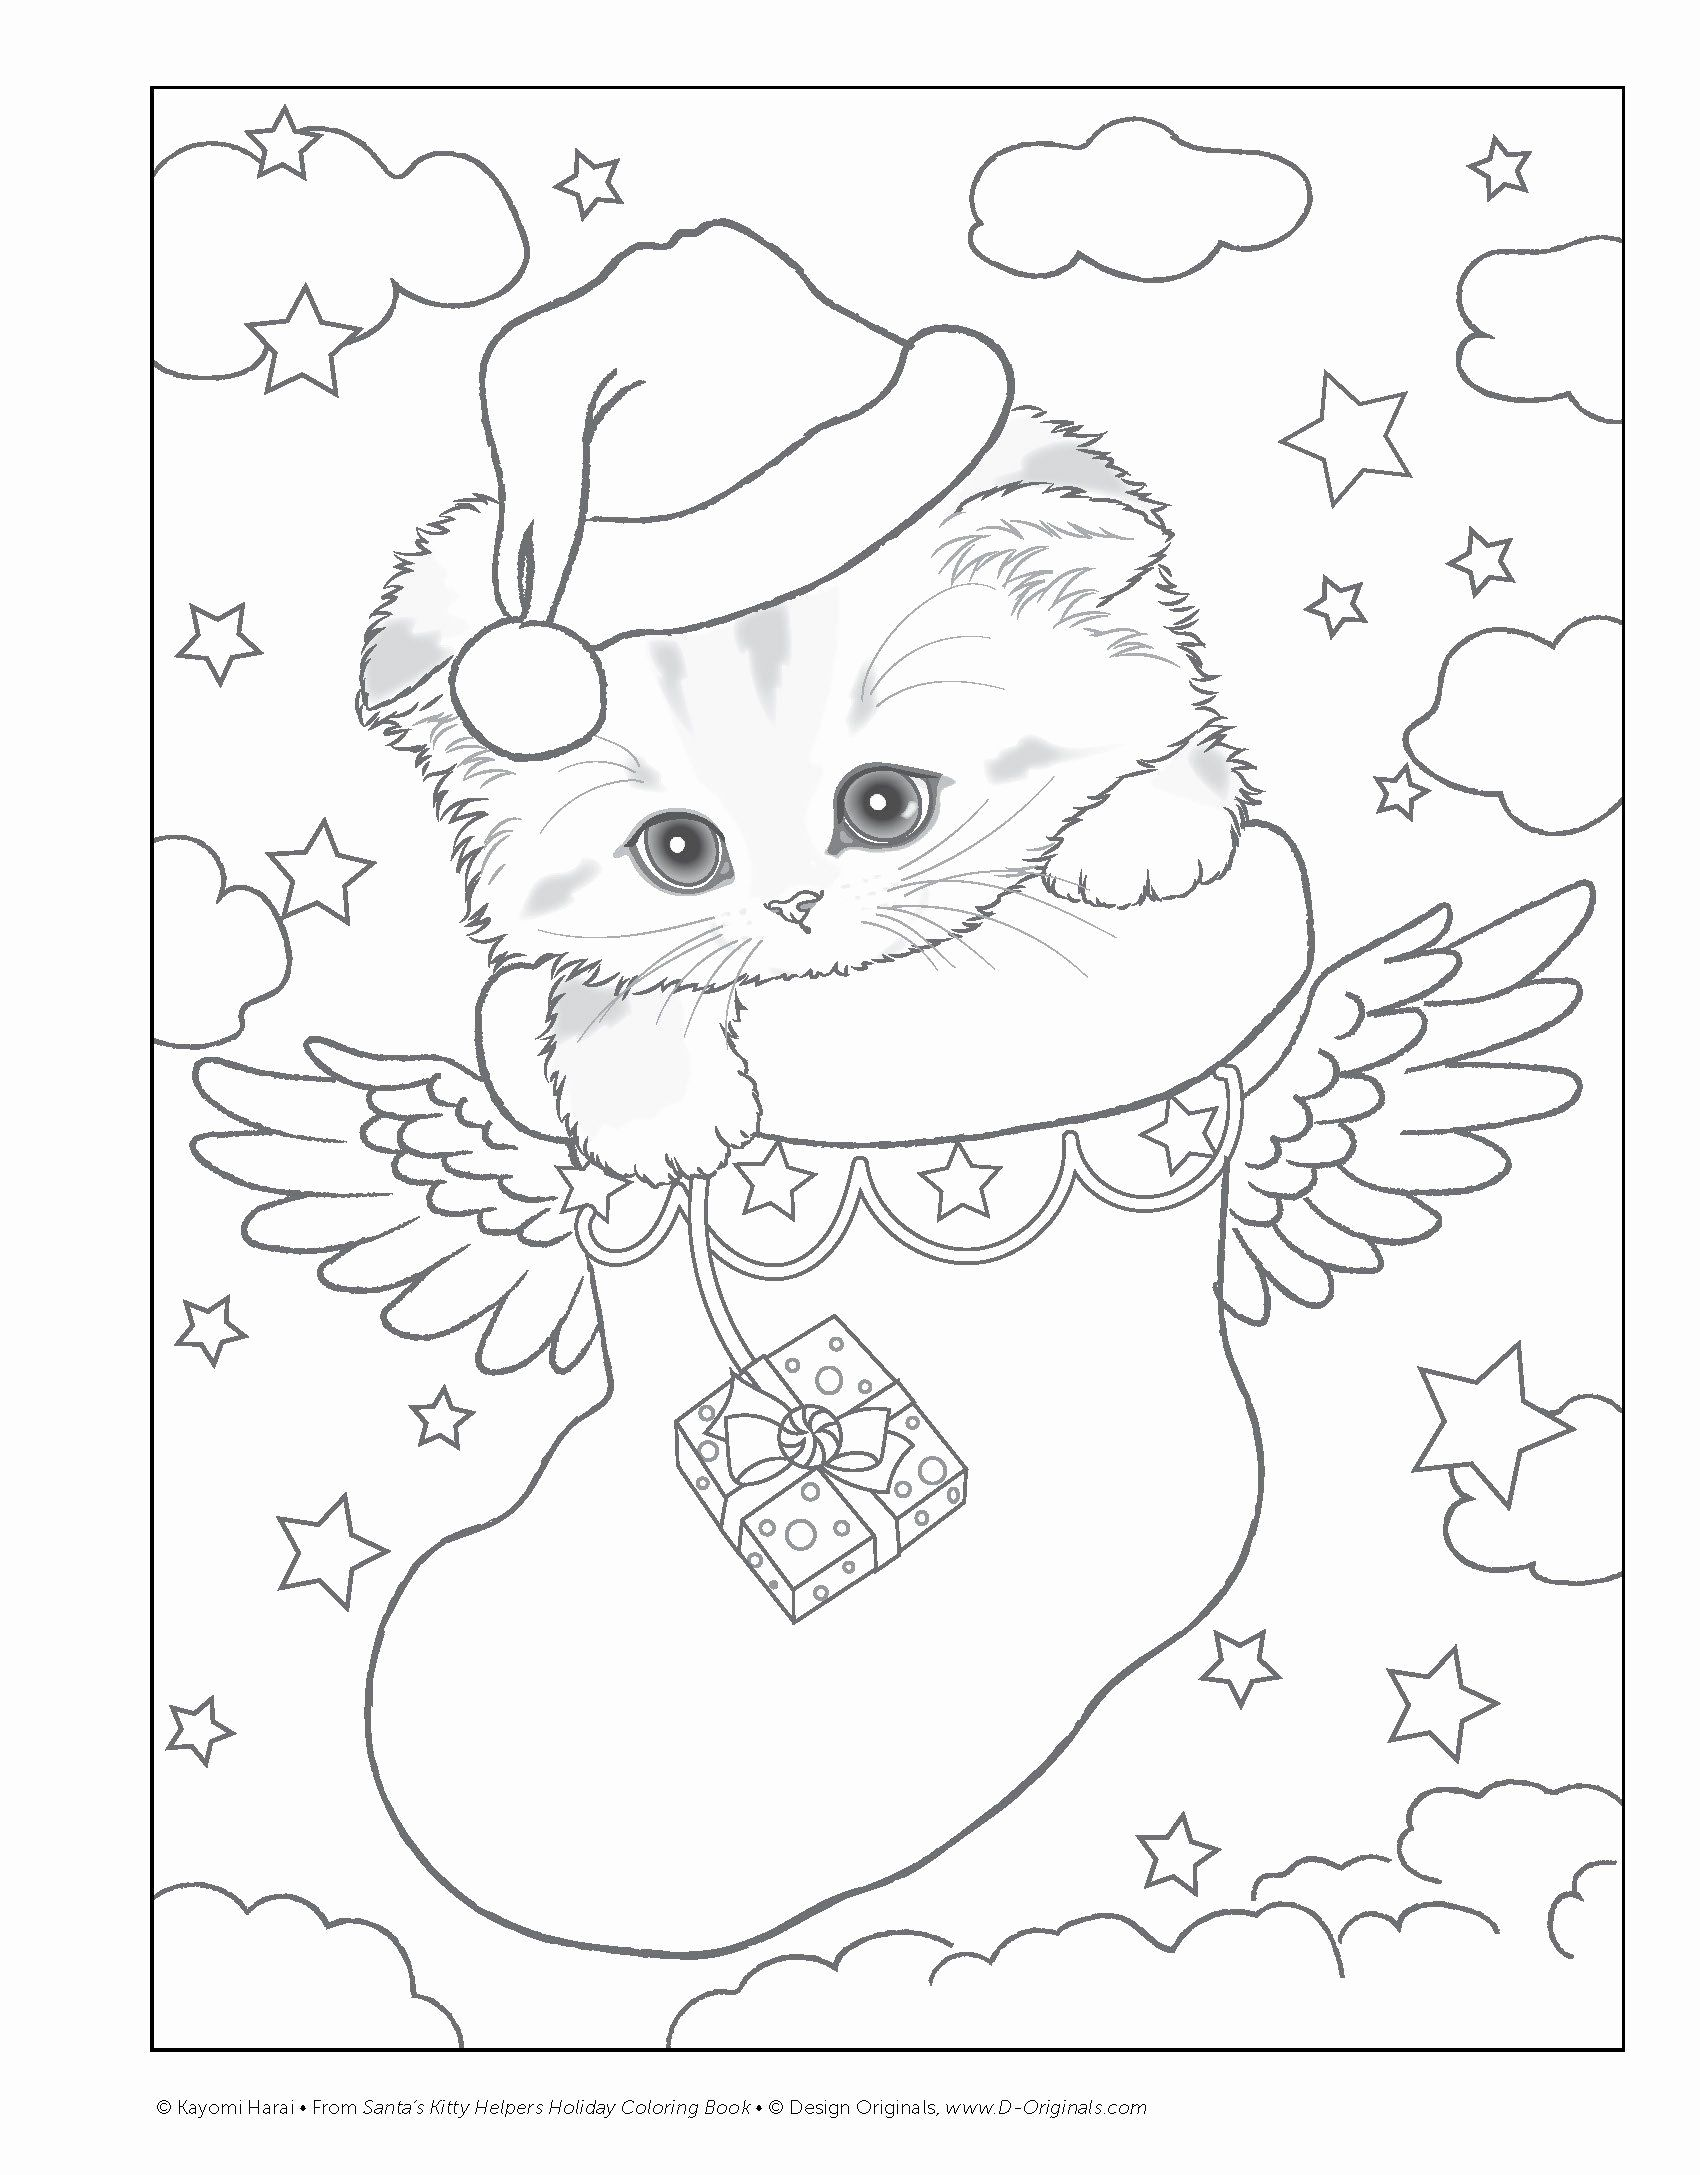 Cat Christmas Coloring Pages For Kids In 2020 Christmas Coloring Pages Christmas Coloring Sheets Designs Coloring Books